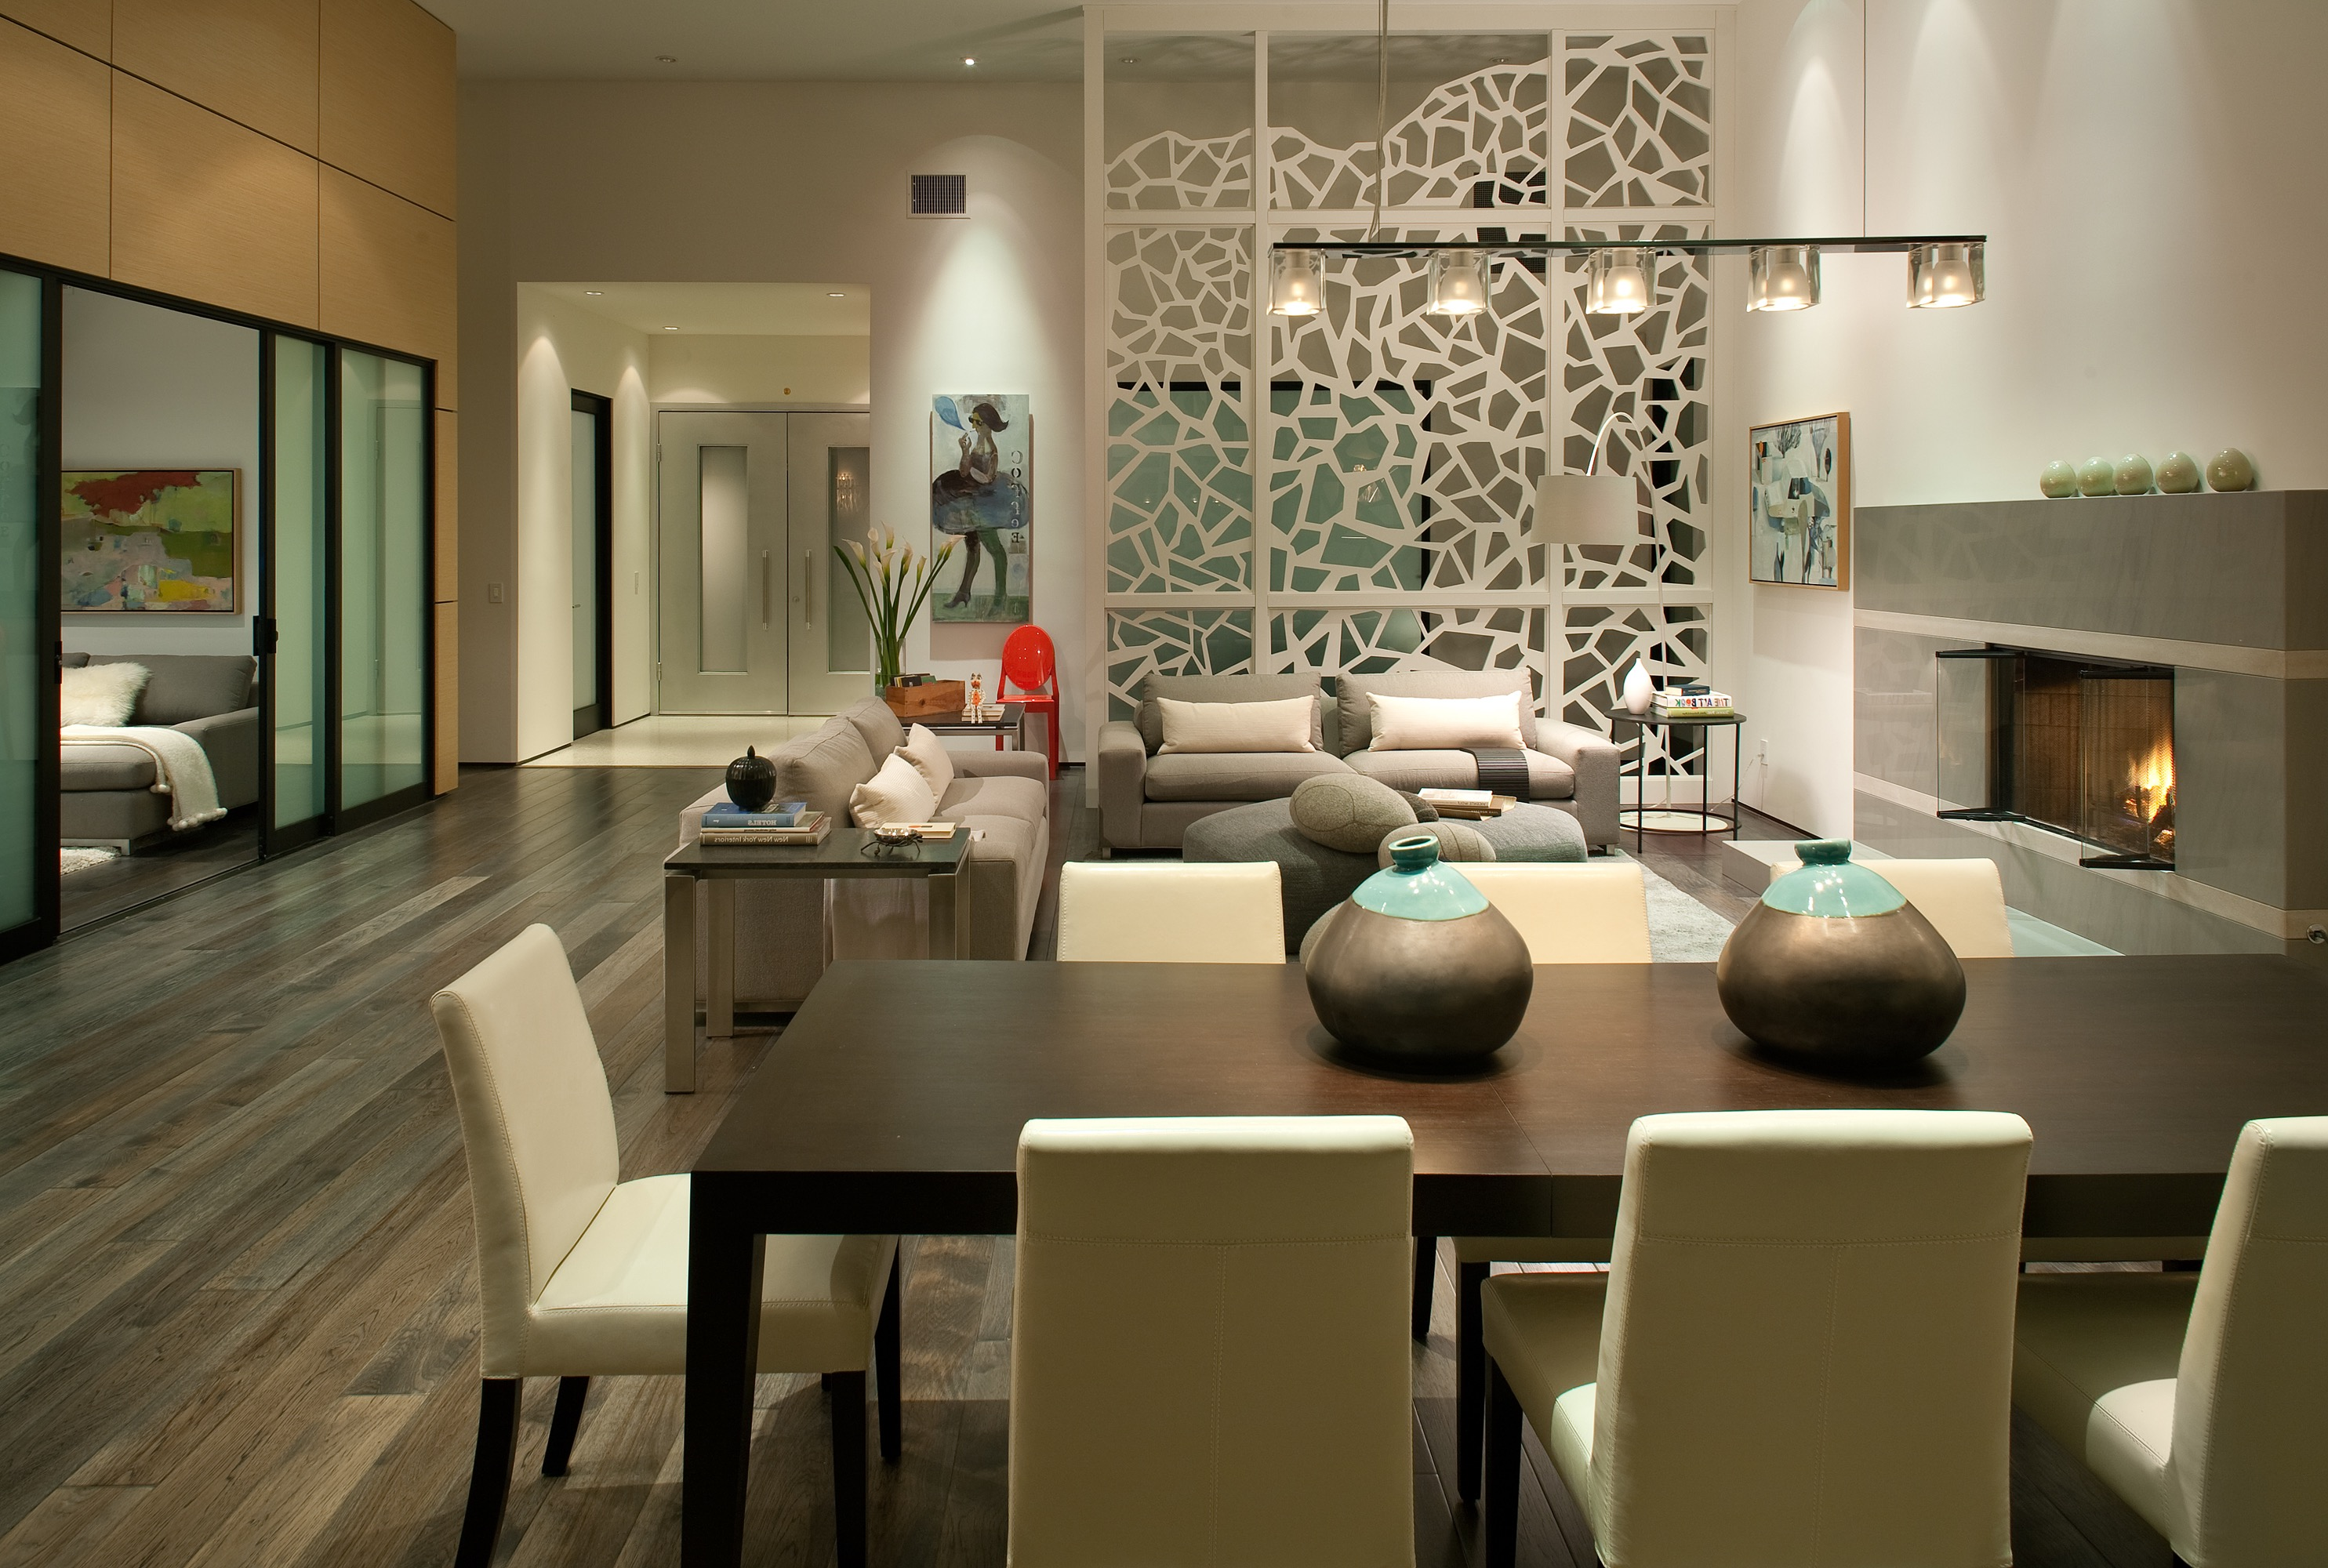 Contemporary White Divider For Dining Room And Living Room (Image 3 of 14)